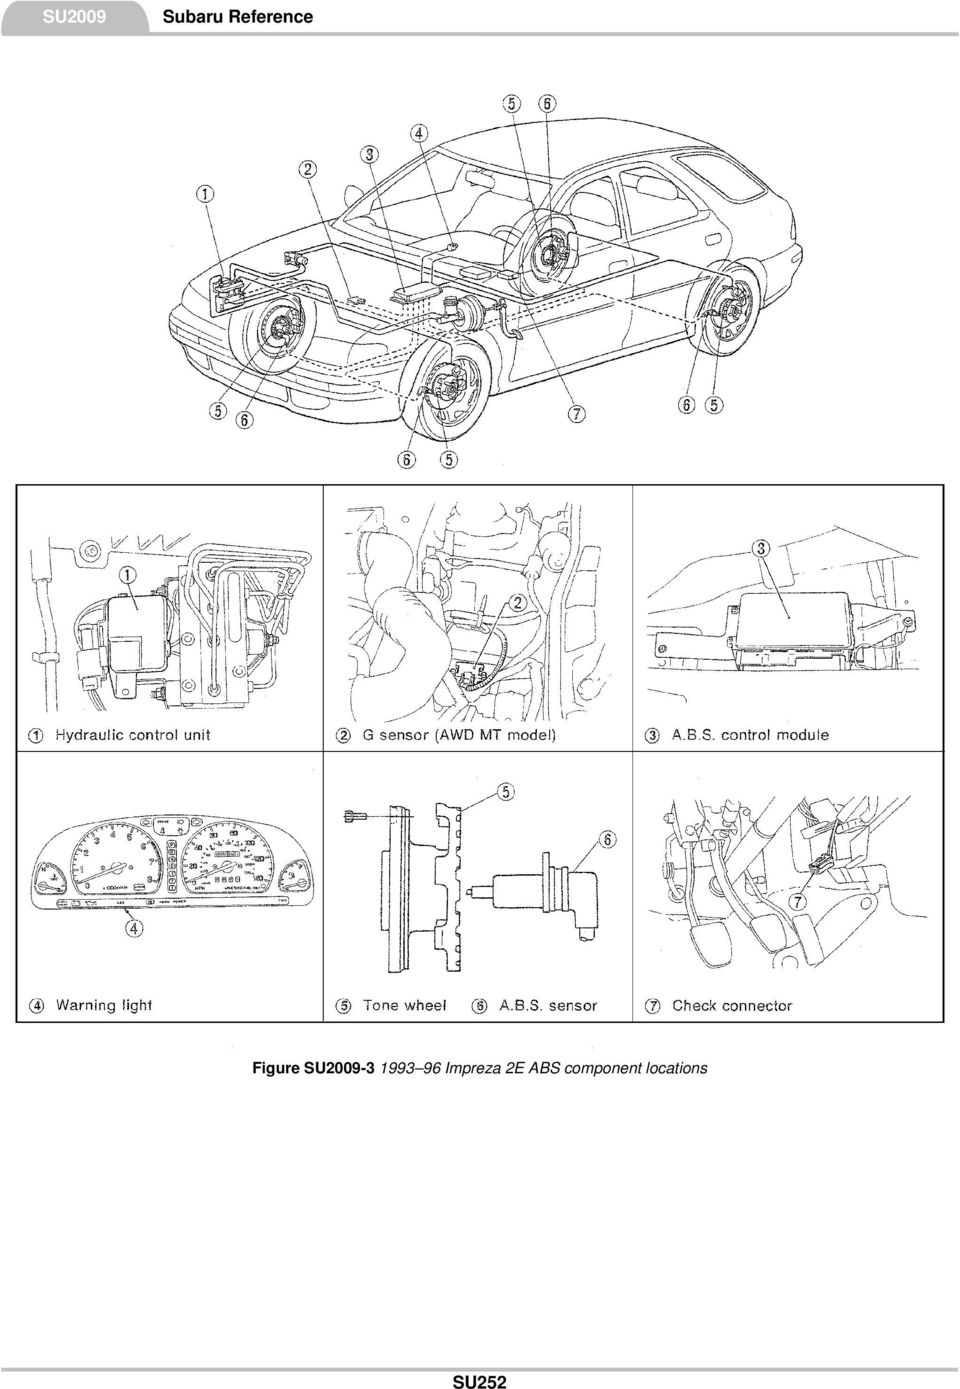 subaru reference  this reference contains the following